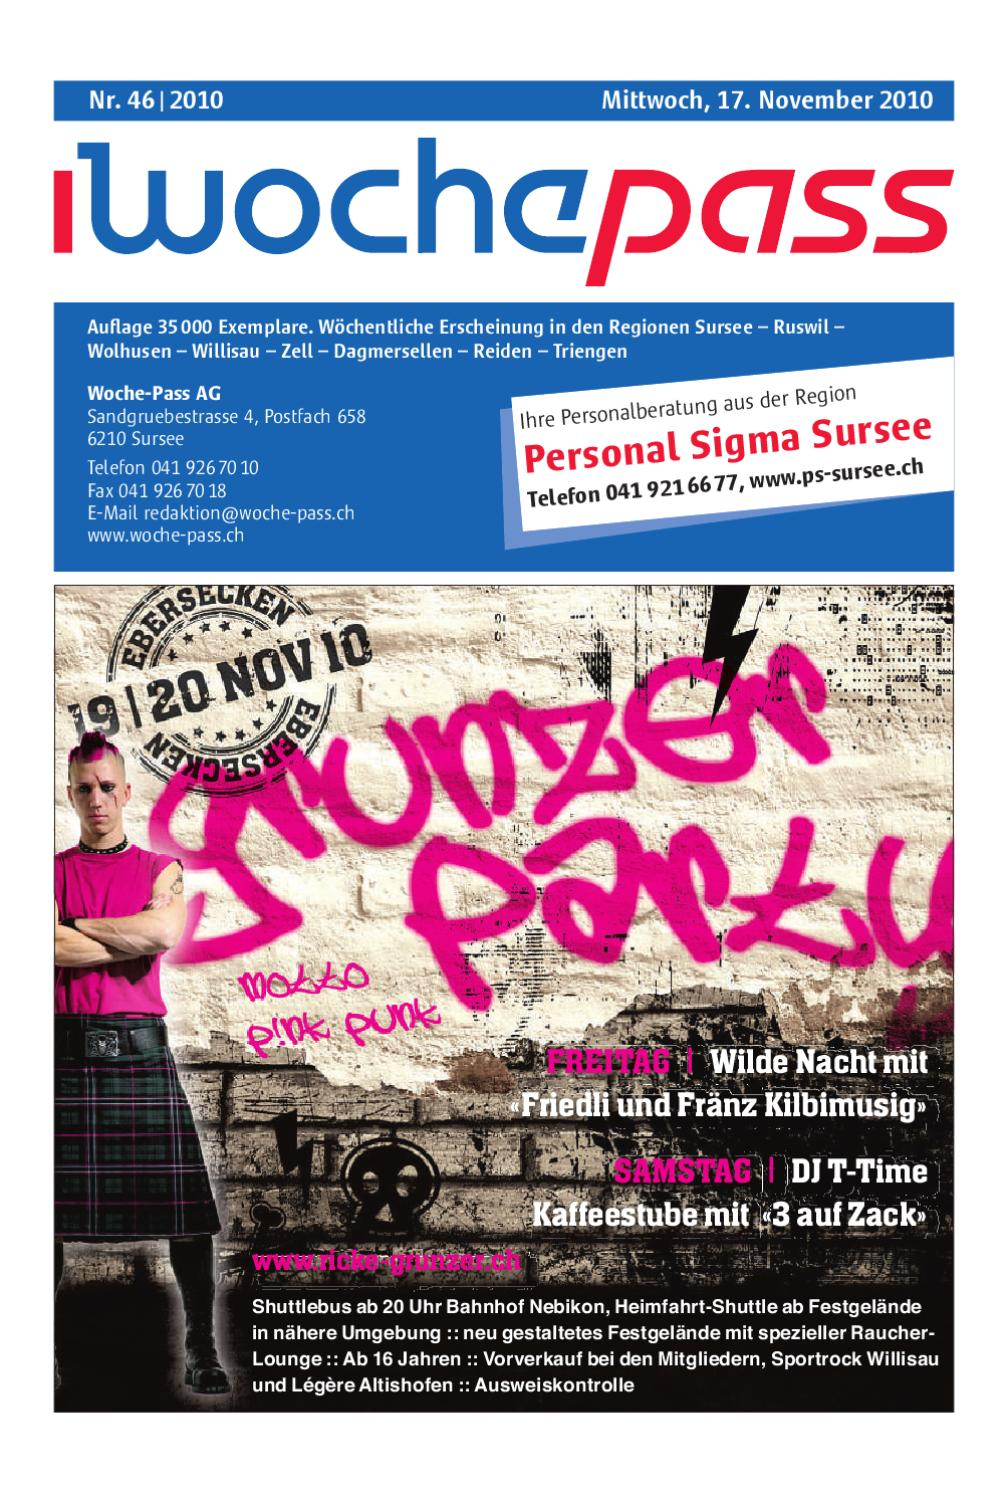 Woche-Pass | KW 16 | 20. April 2011 by Woche-Pass AG - issuu